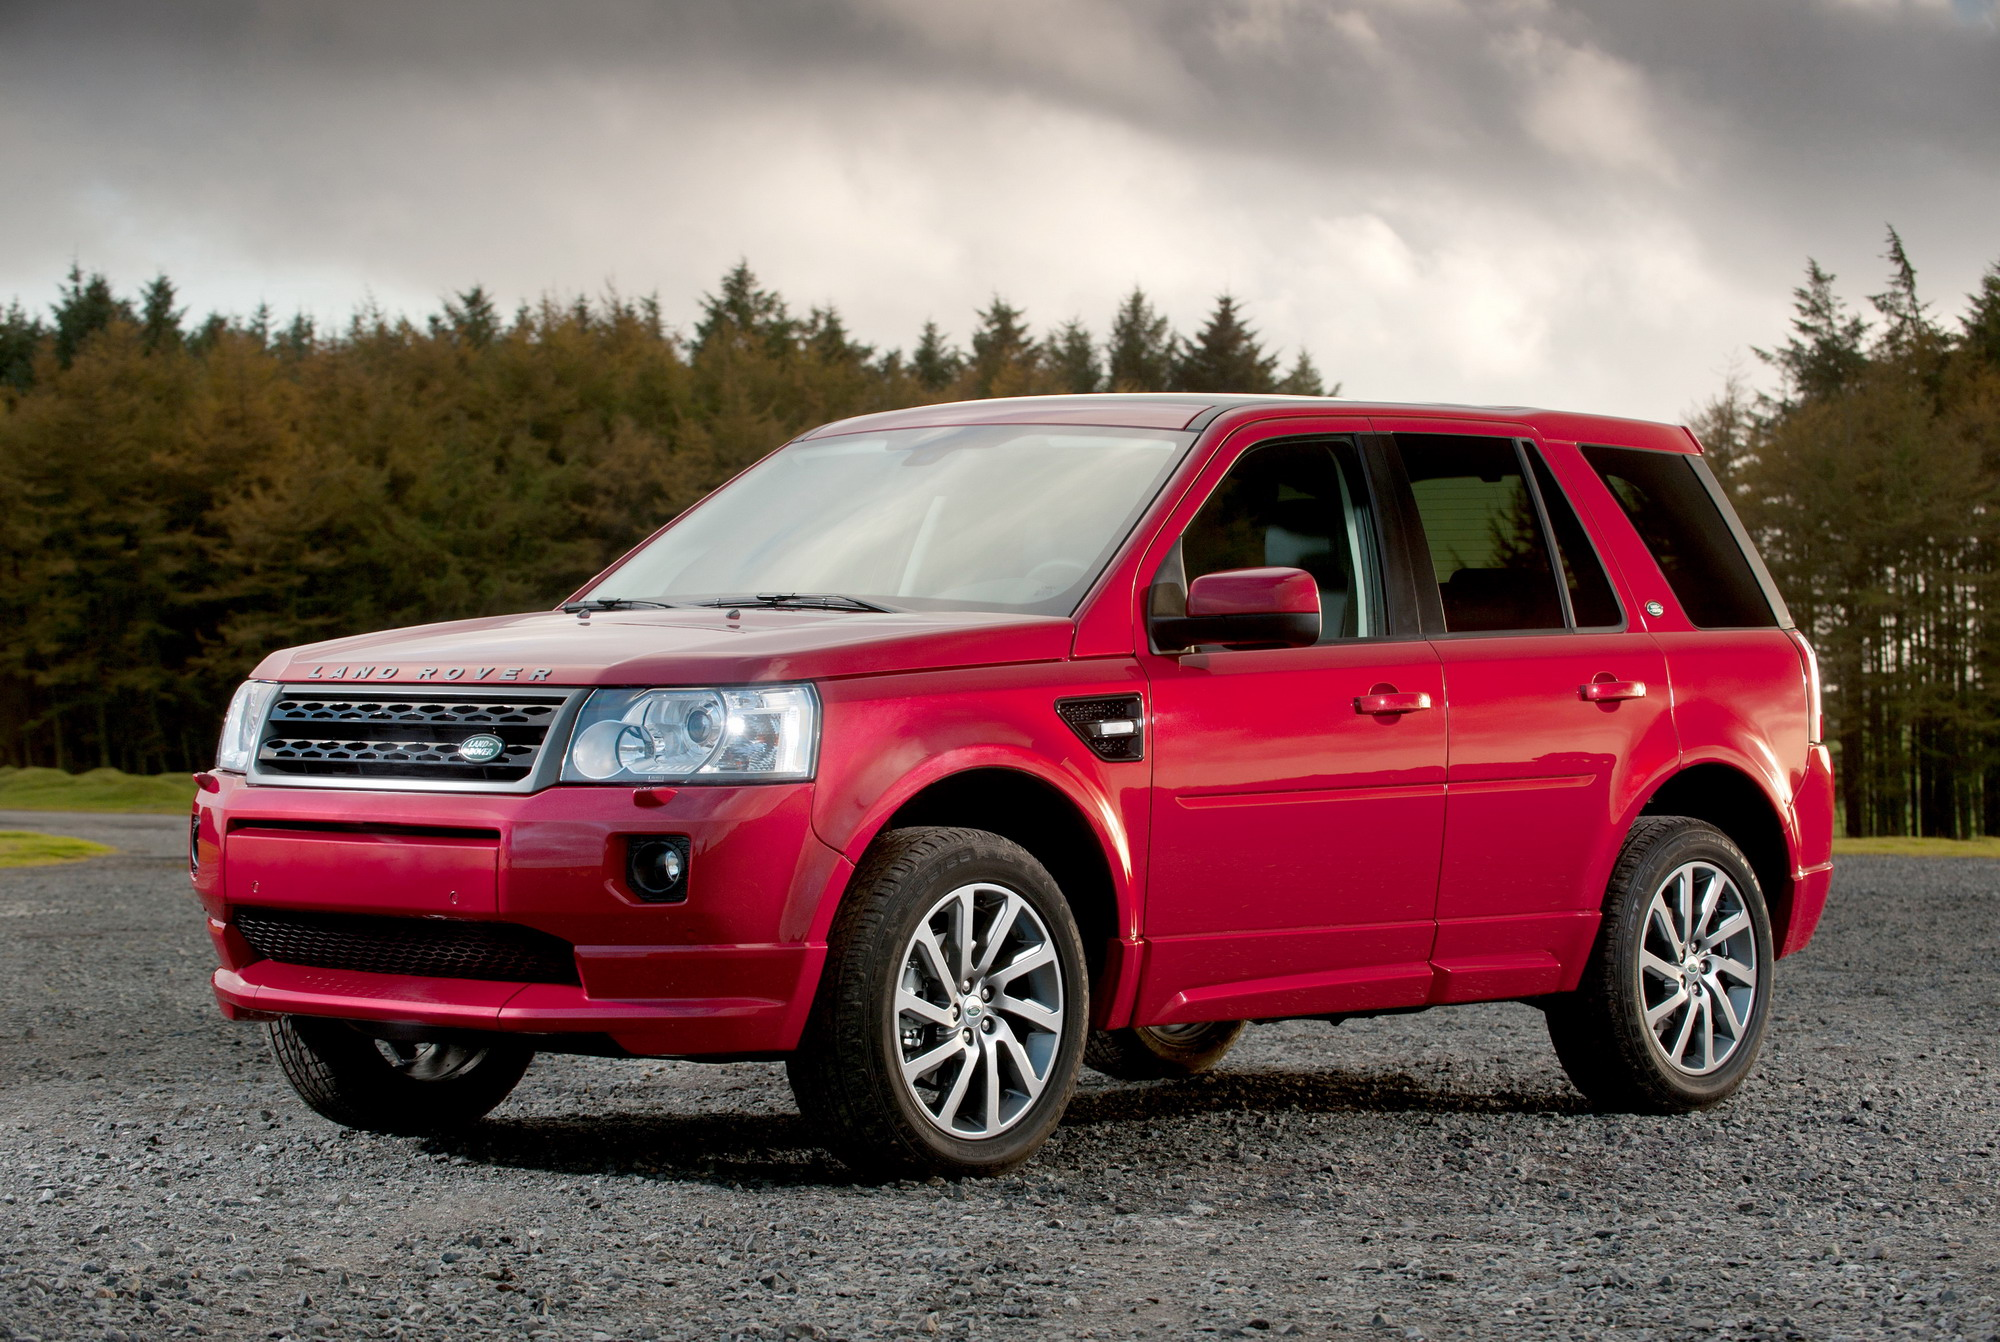 Land Rover Freelander Reviews Specs & Prices Top Speed